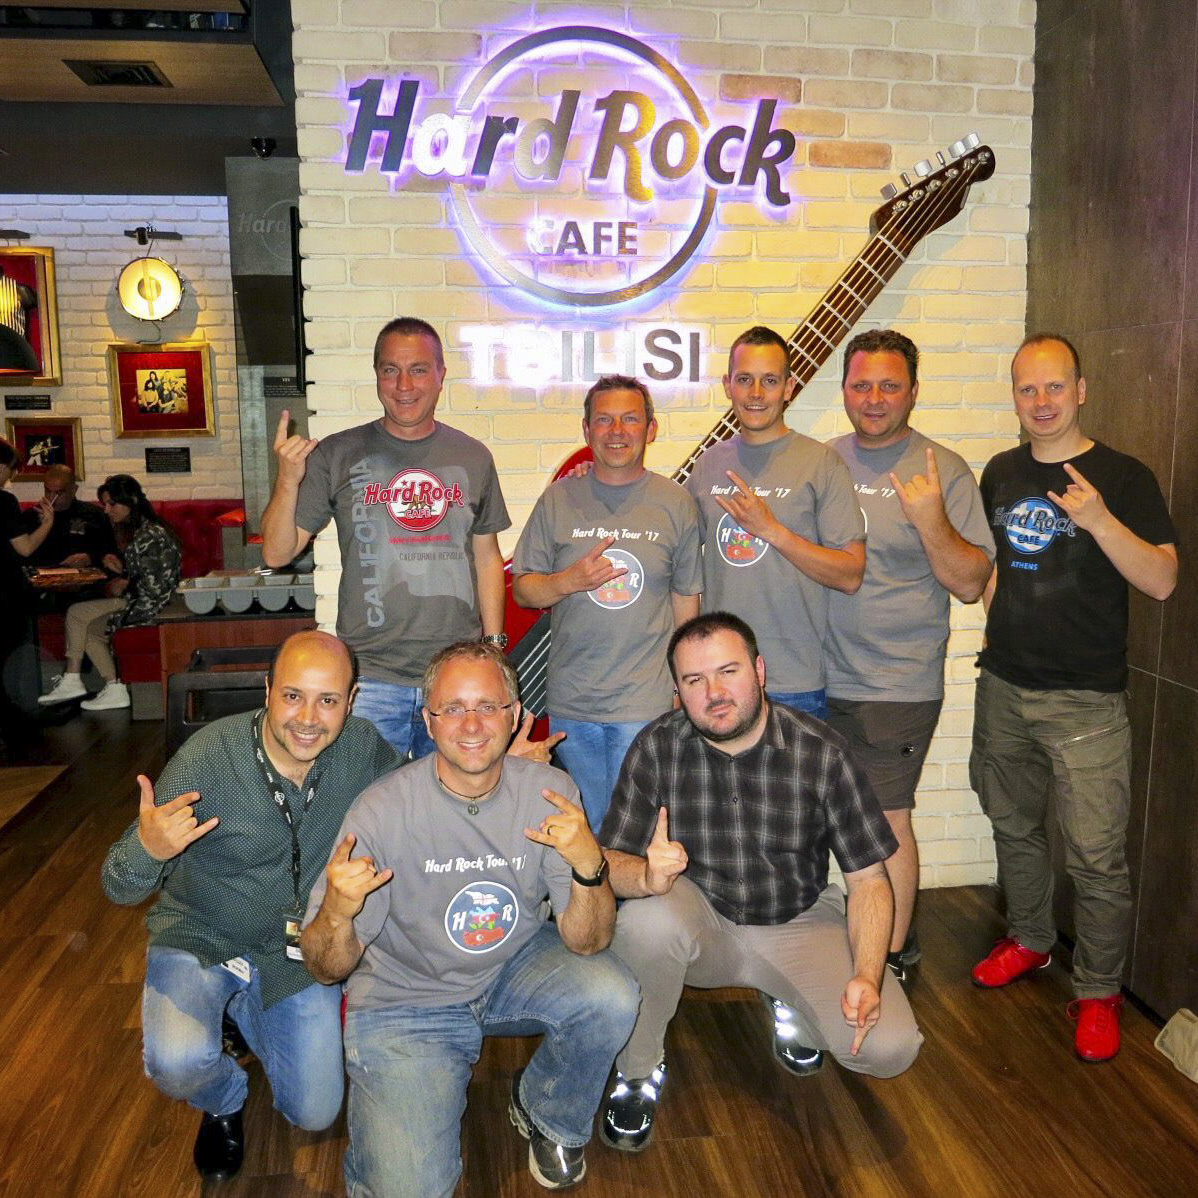 Hard Rock Cafe Tbilisi - Group picture